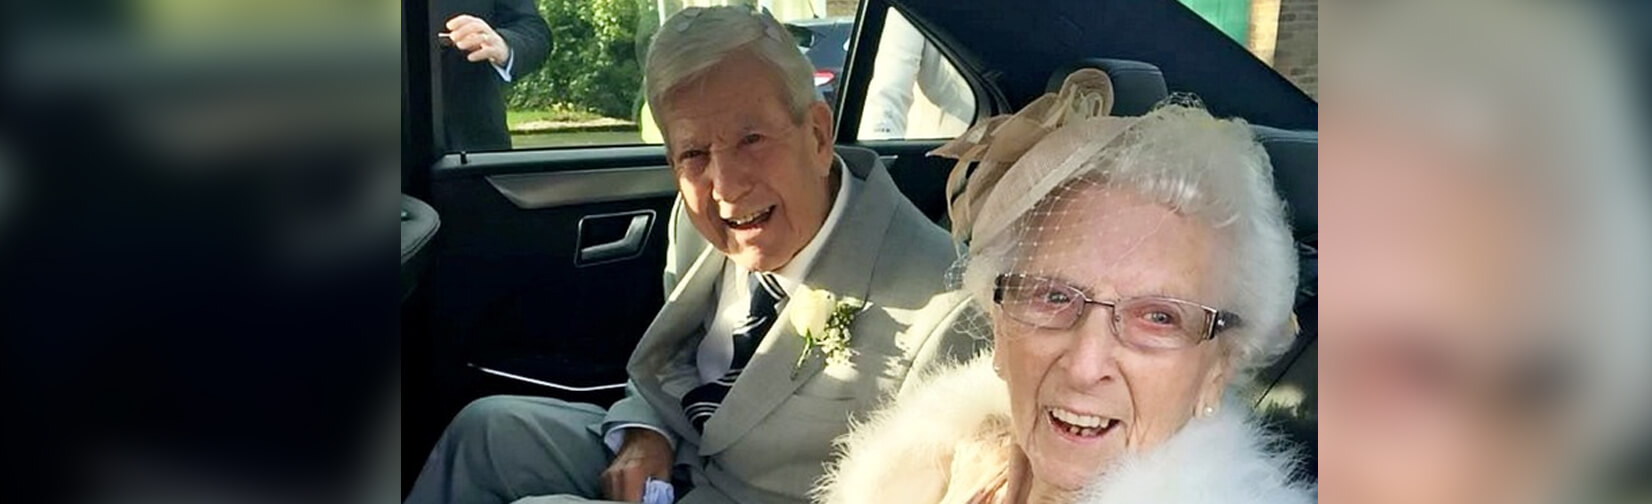 90-year-old groom marries his 96-year-old sweetheart